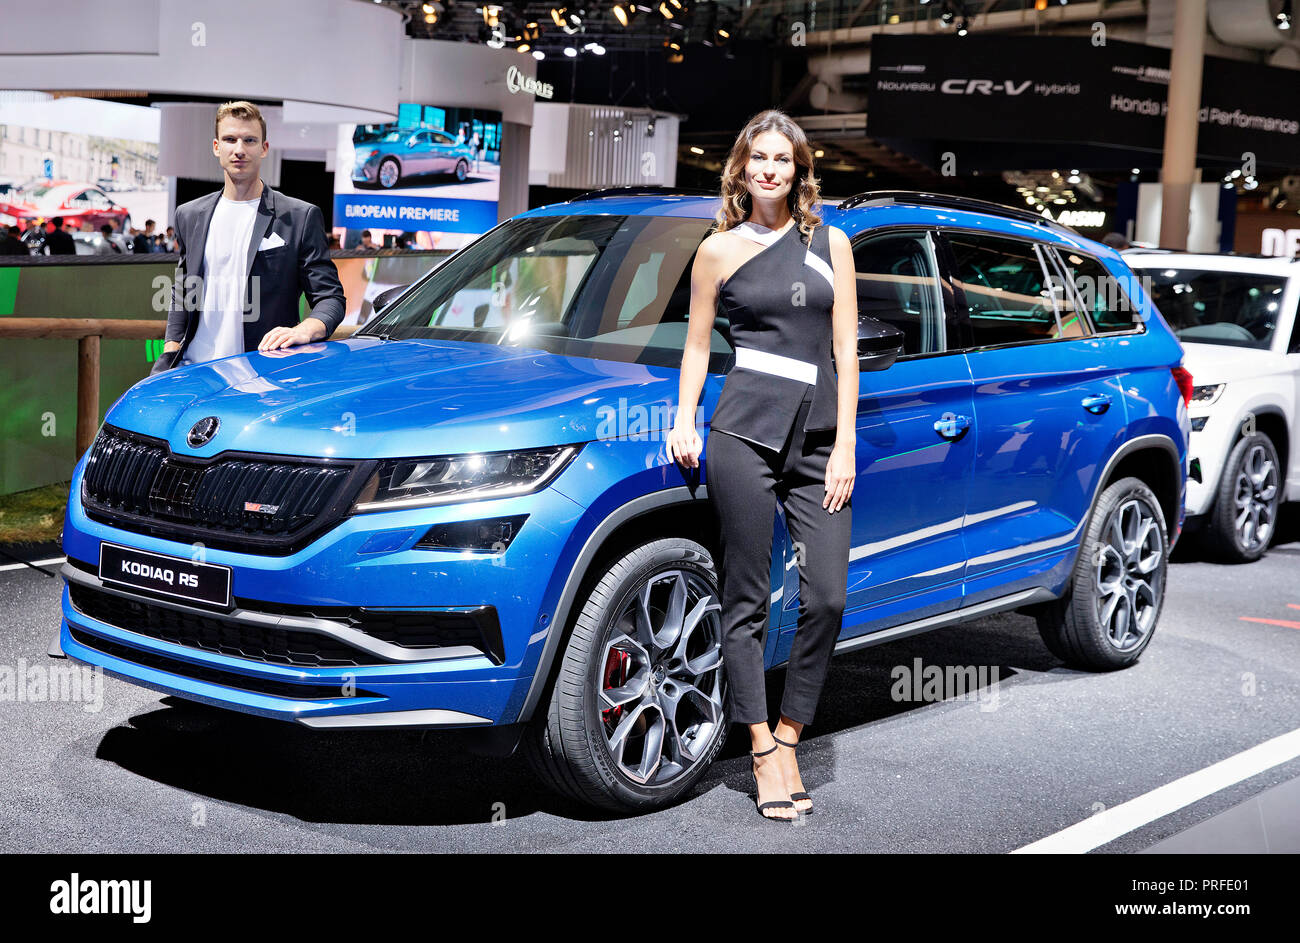 Skoda Auto carmaker presented in World Premiere new version of SUV Skoda Kodiaq RS  during the first press day of the International Motor Show in Pari - Stock Image